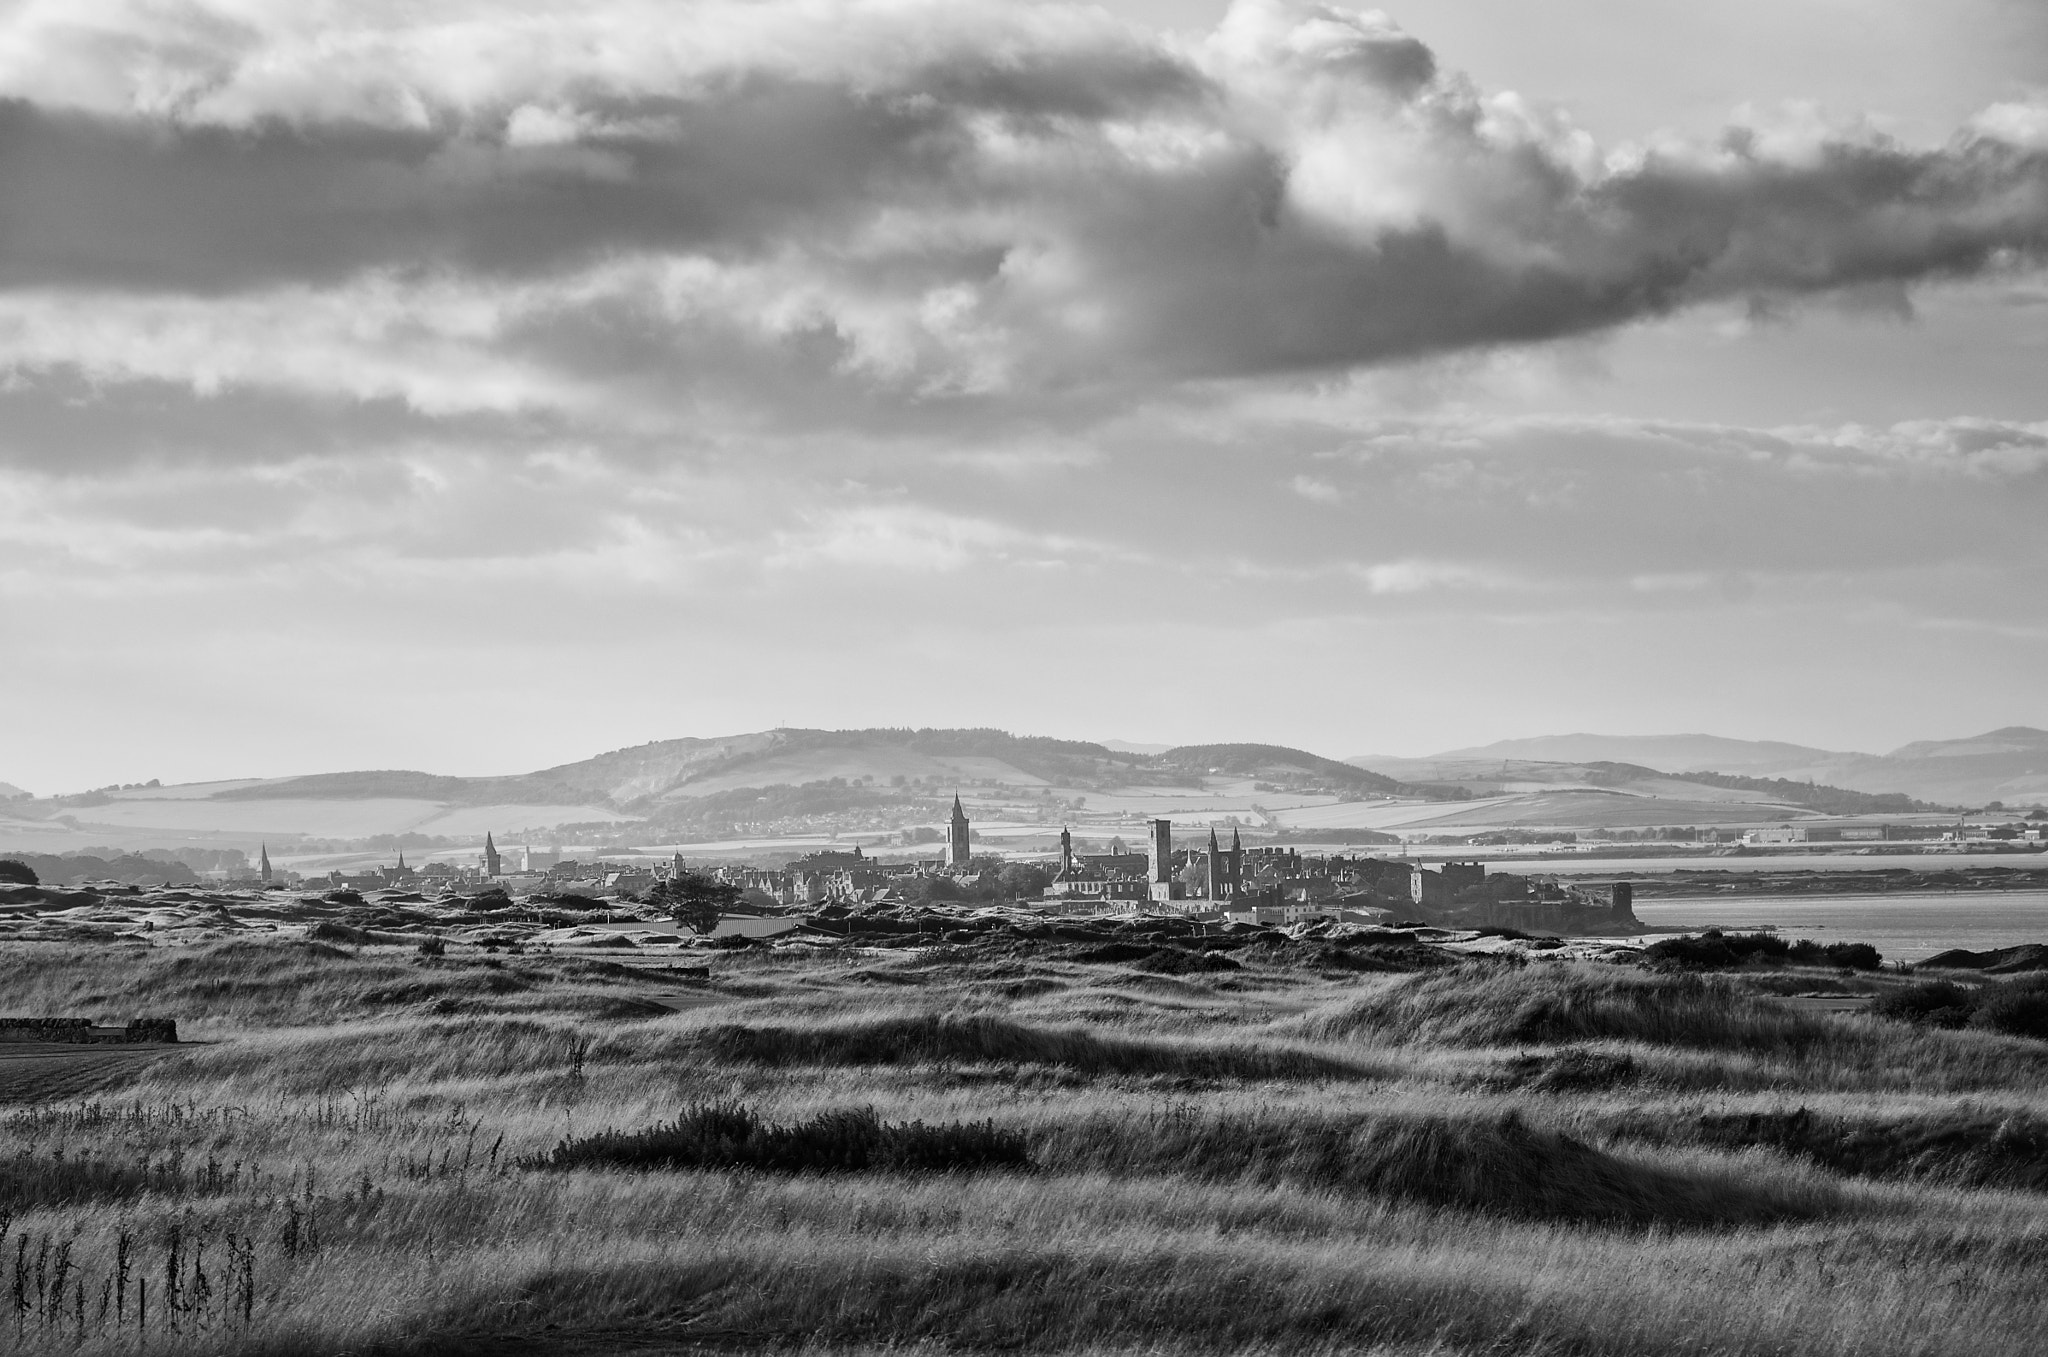 Photograph The Town of St. Andrews by Dan Goldberger on 500px